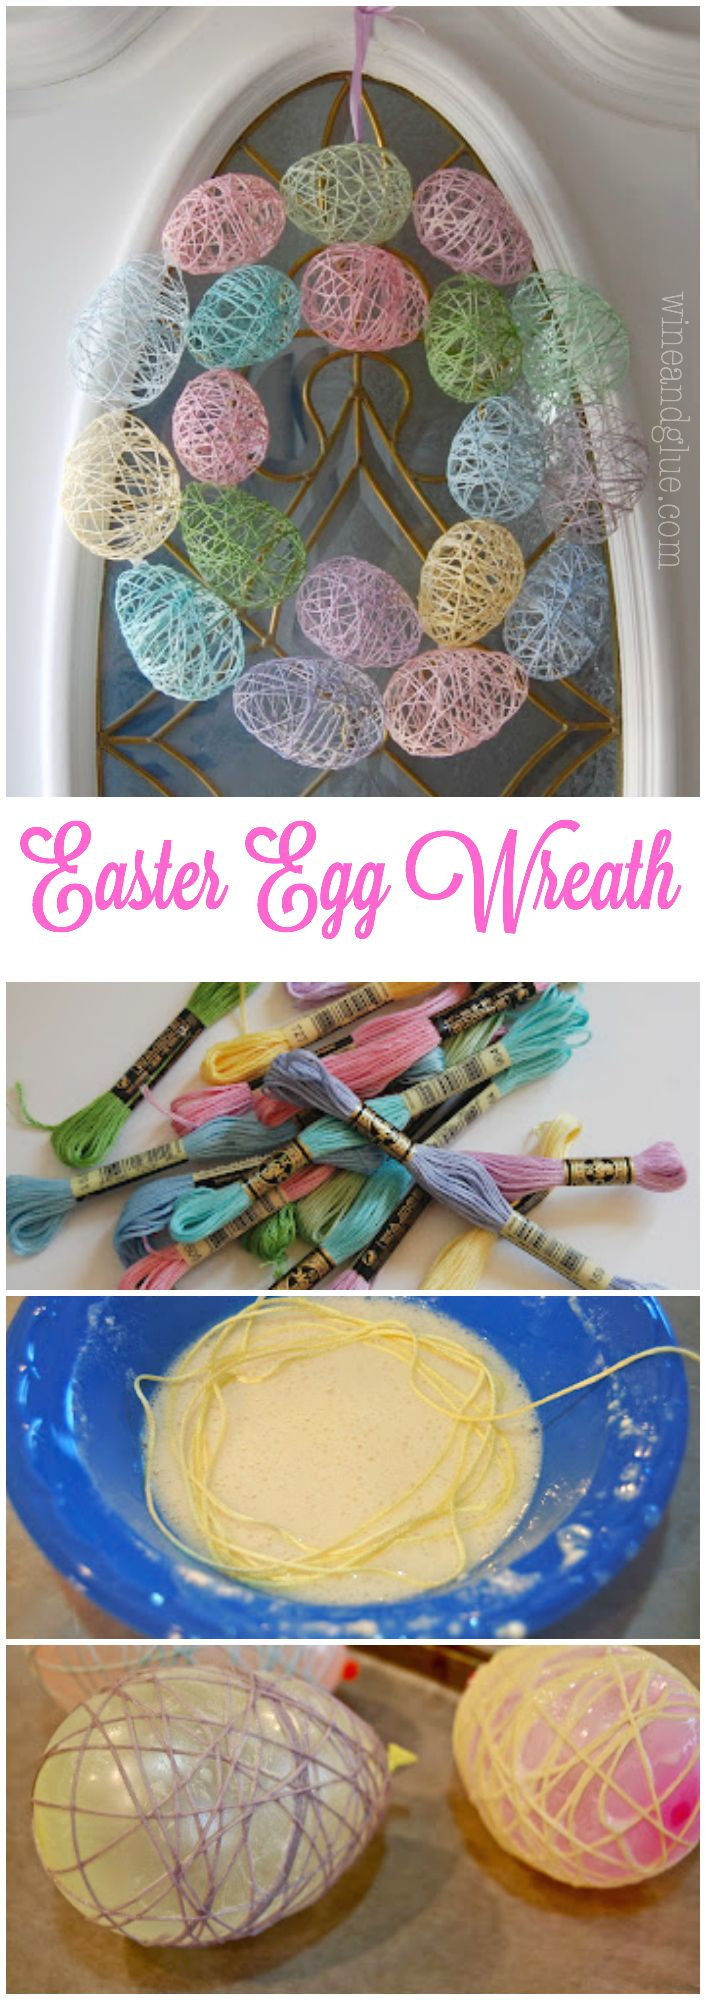 Easter Egg Wreath | A gorgeous wreath made from simple supplies! #wreath #easter